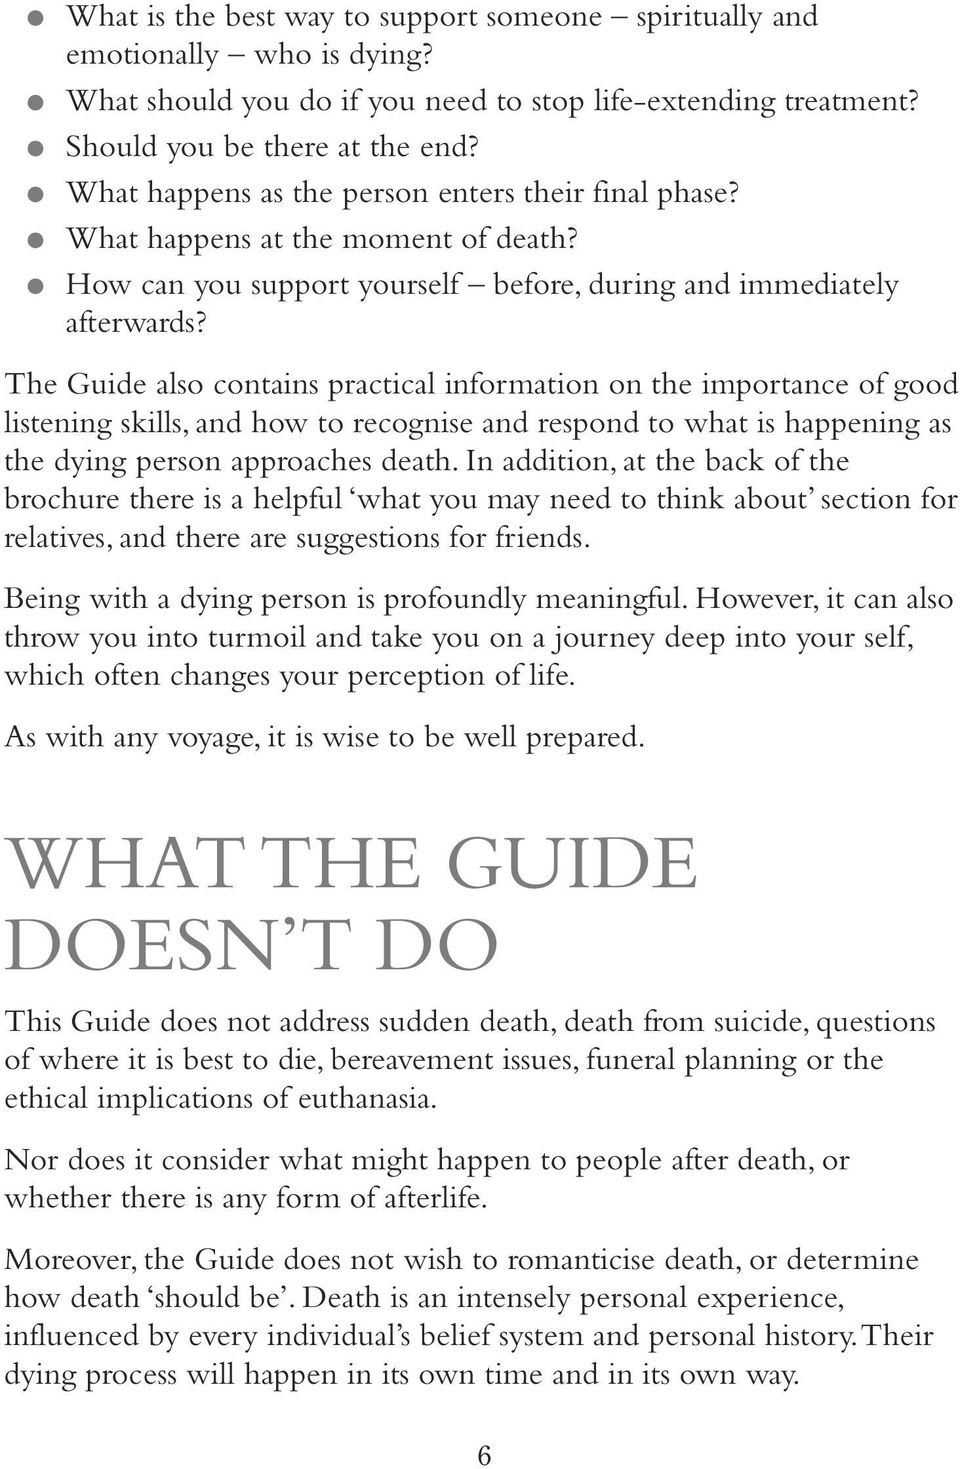 The Guide also contains practical information on the importance of good listening skills, and how to recognise and respond to what is happening as the dying person approaches death.